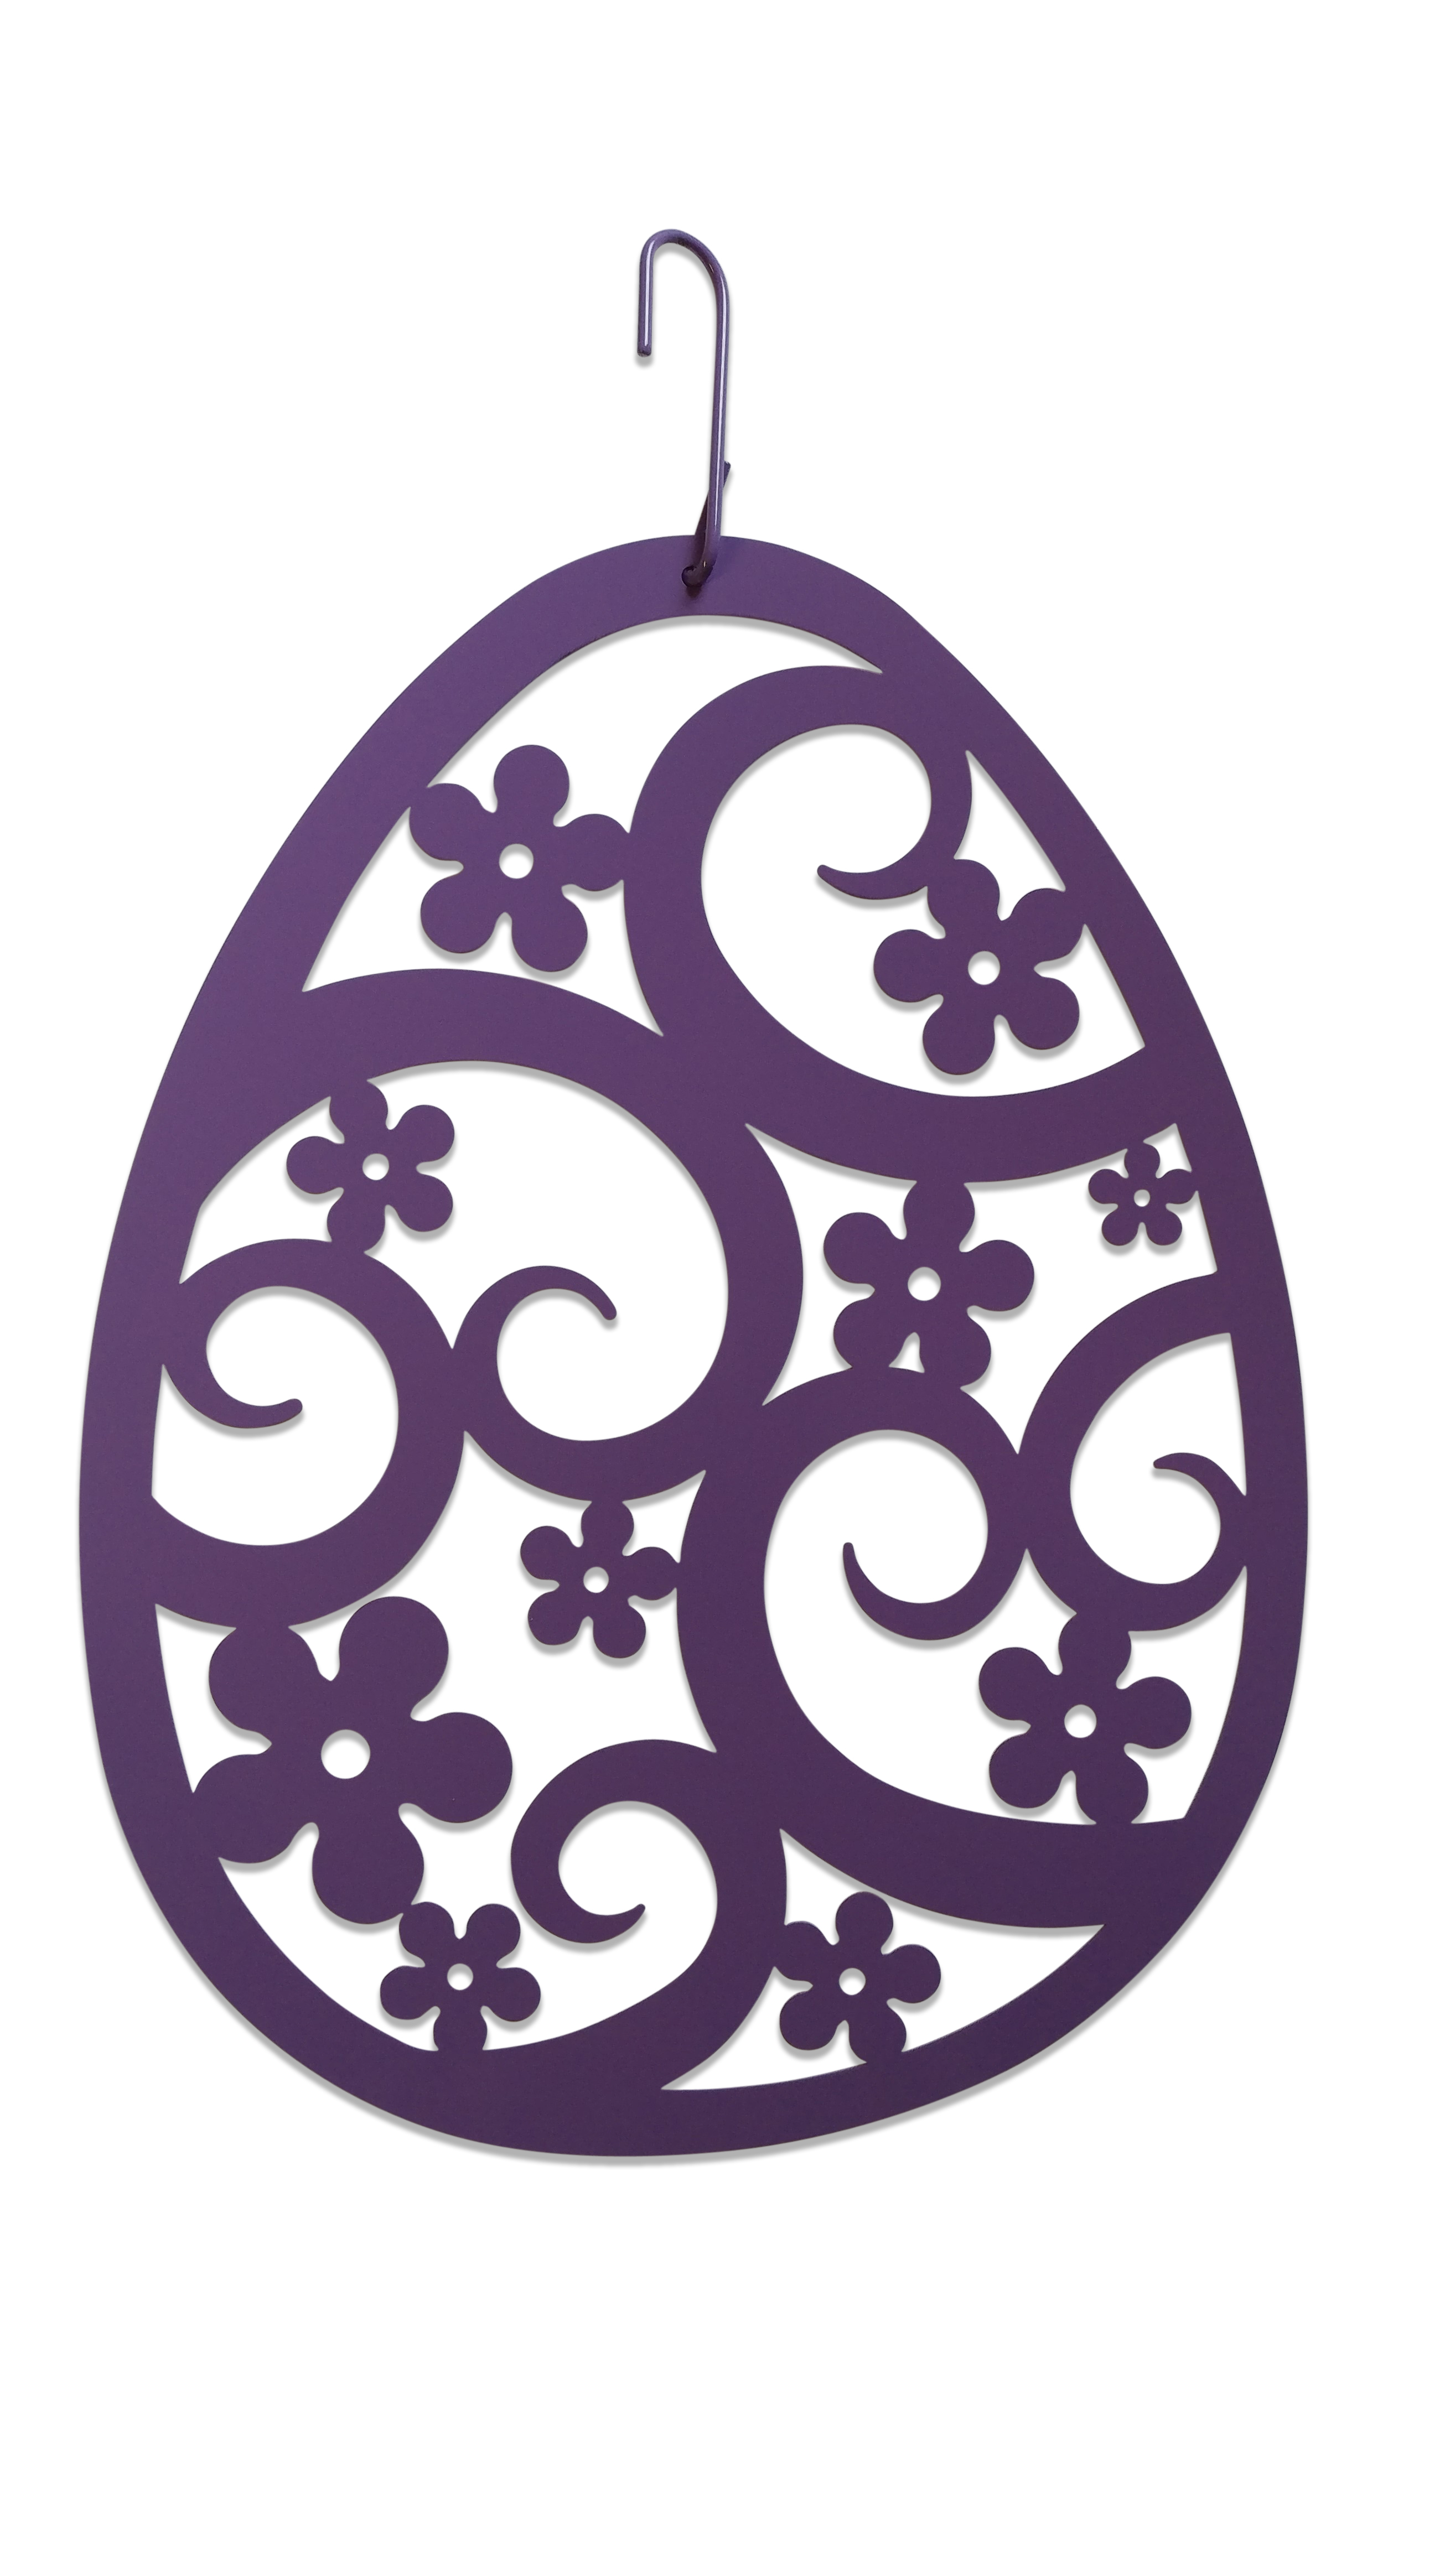 Easter Egg - Decorative Hanging Silhouette-New Purple Color